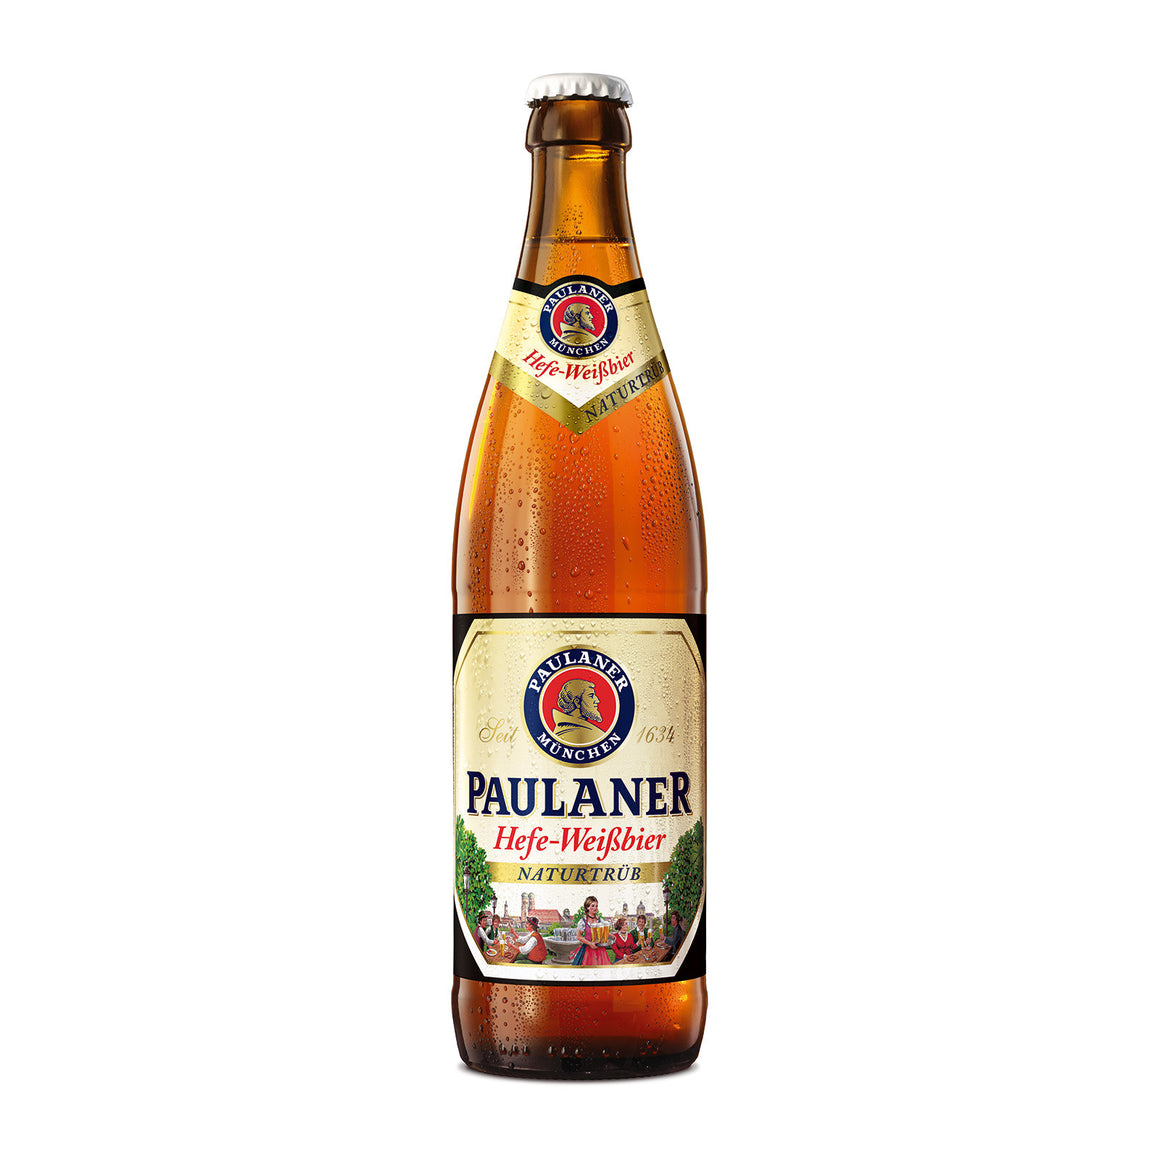 Paulaner Brewery - Hefe-Weißbier Naturtrub - Wheat Beer - 500ml Bottle